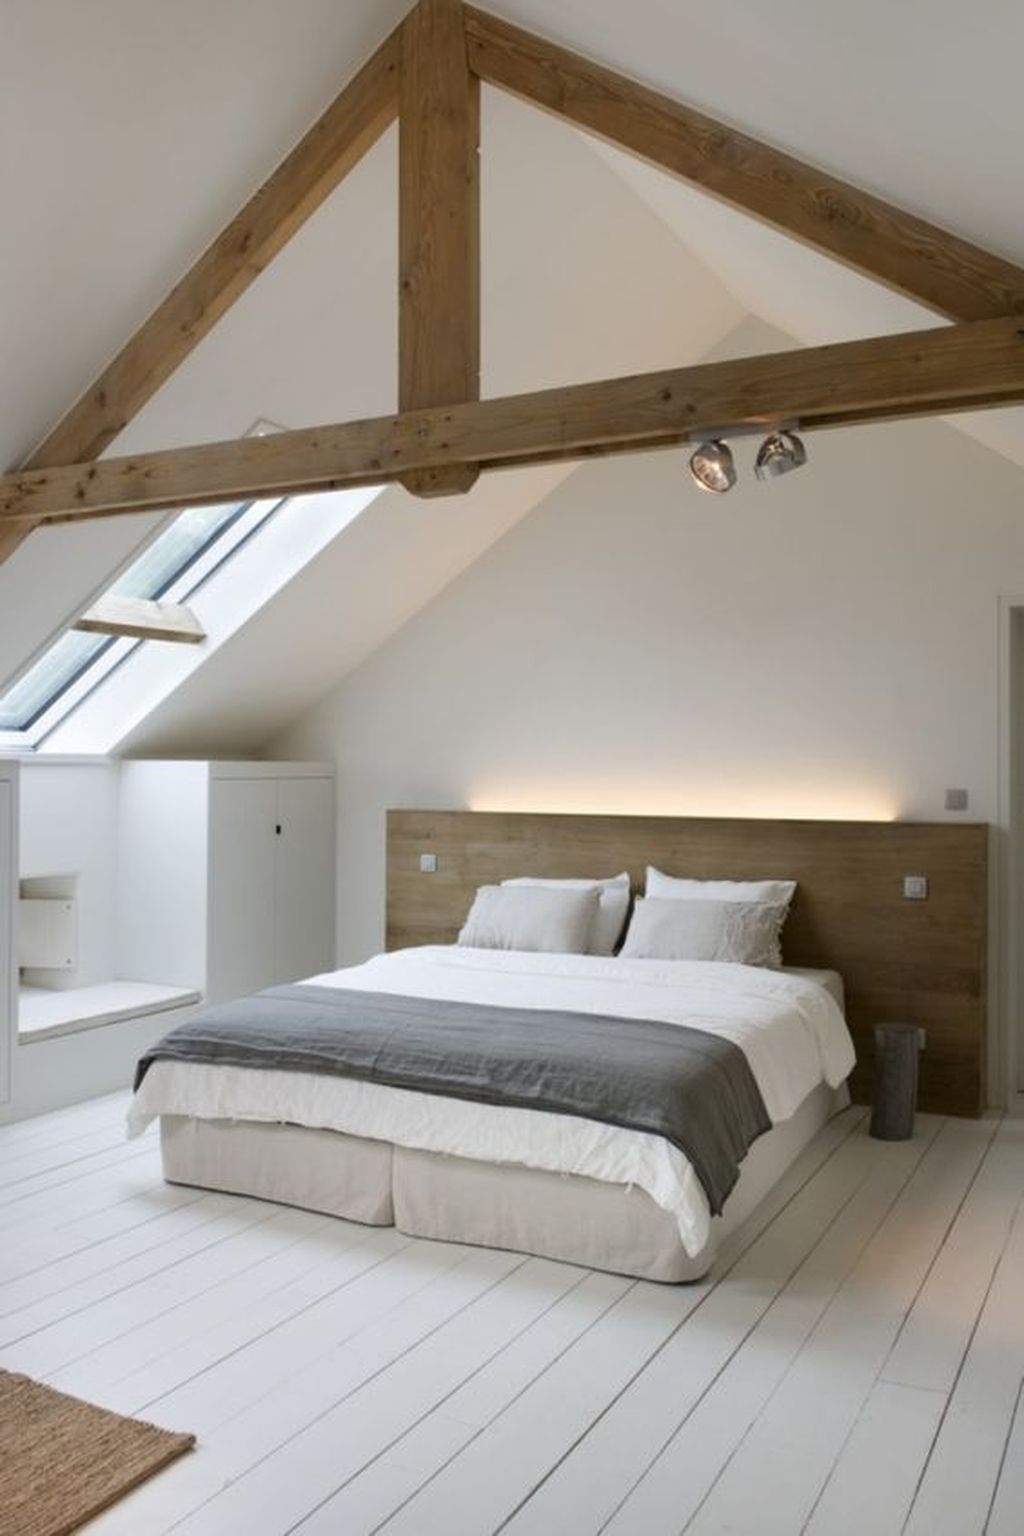 15+ Inspiring Attic Bedroom Ideas #garageideasstorage